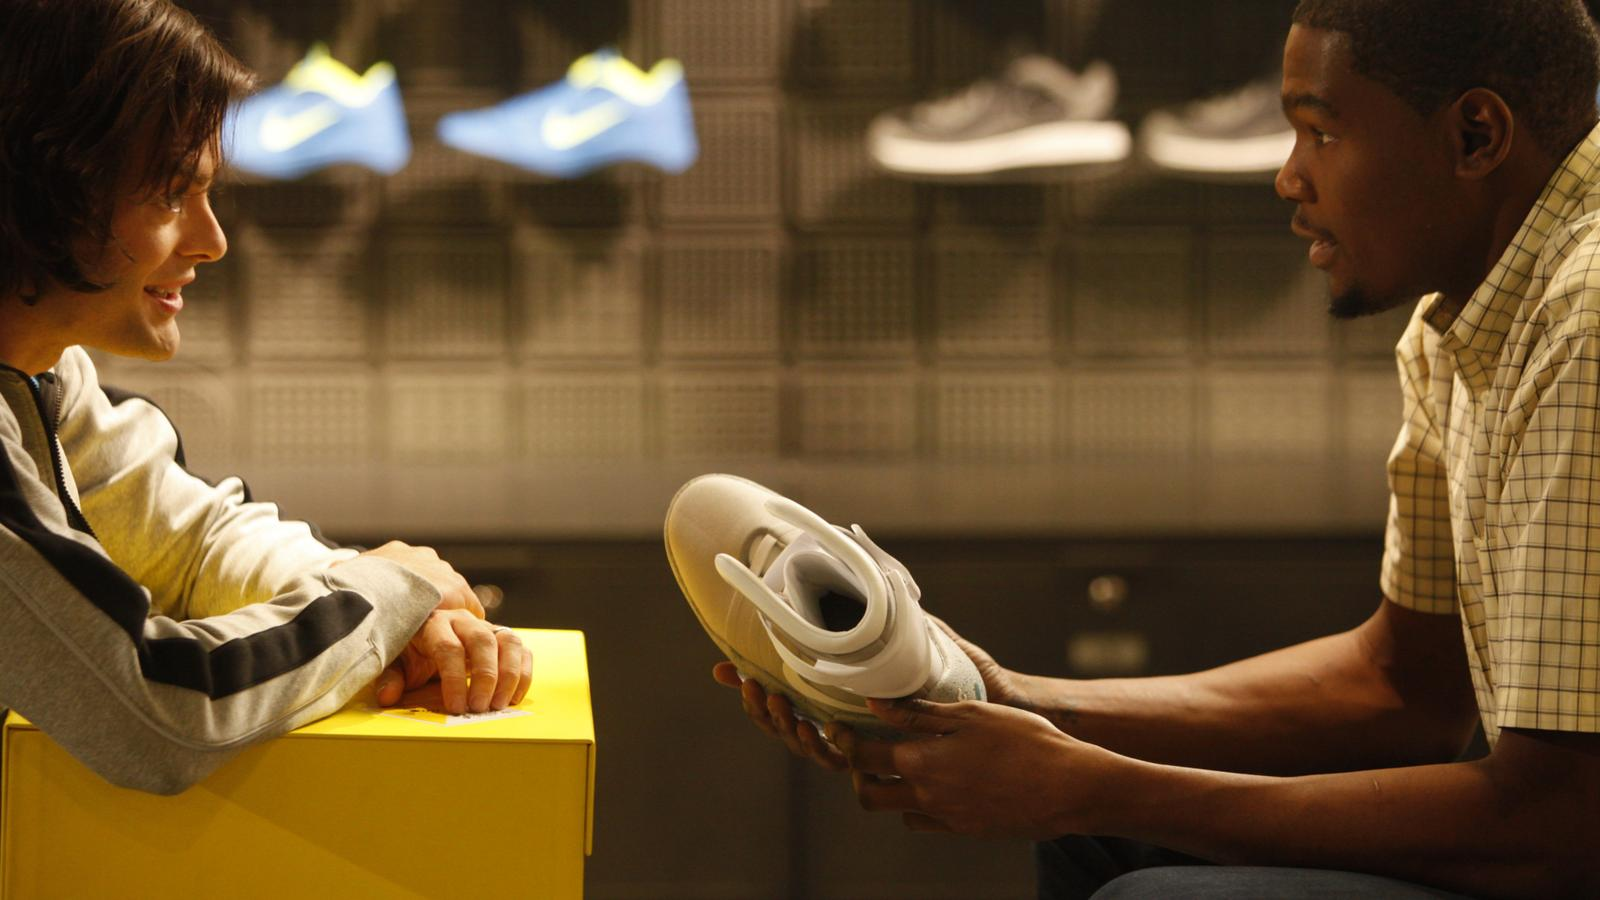 Lujo Sucio alarma  1,500 pairs of the mythical 2011 NIKE MAG shoes will be auctioned on eBay -  Nike News